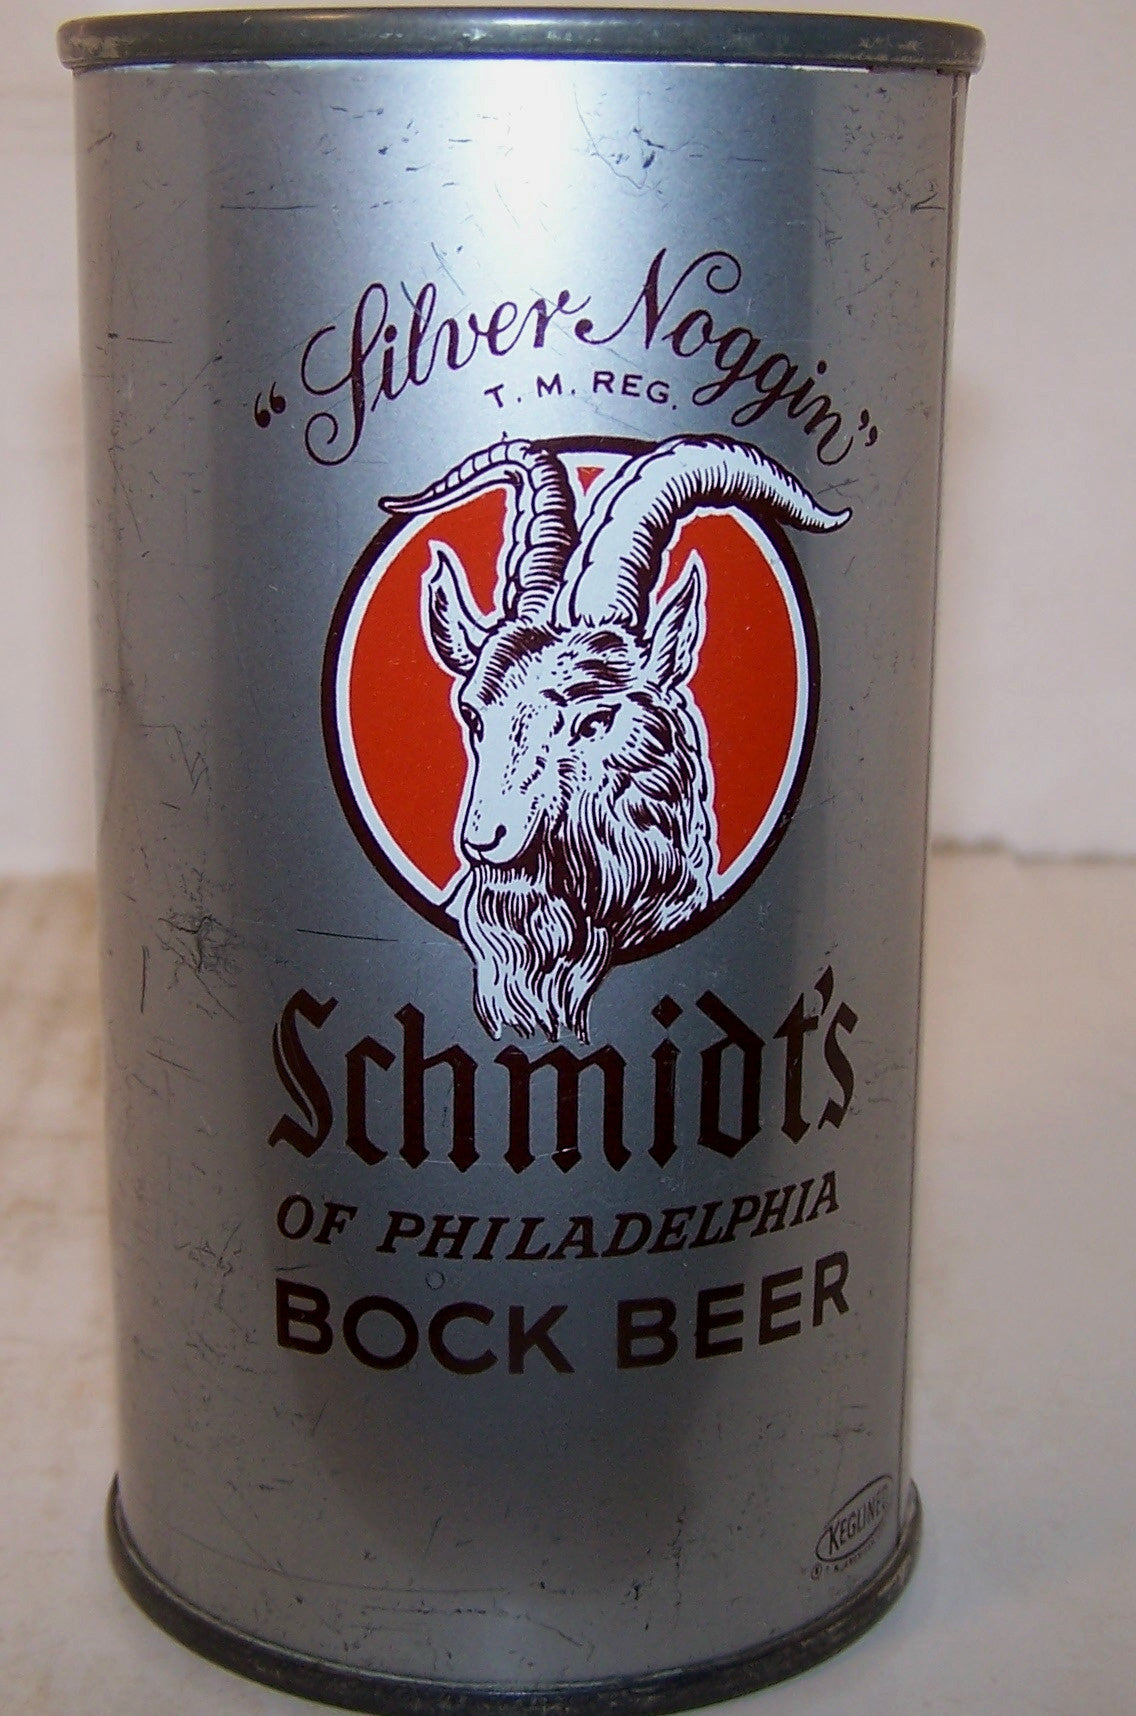 Schmidt's Bock Beer, USBC 131-33 Grade 1/1- tough bock can Sold on 2/28/15